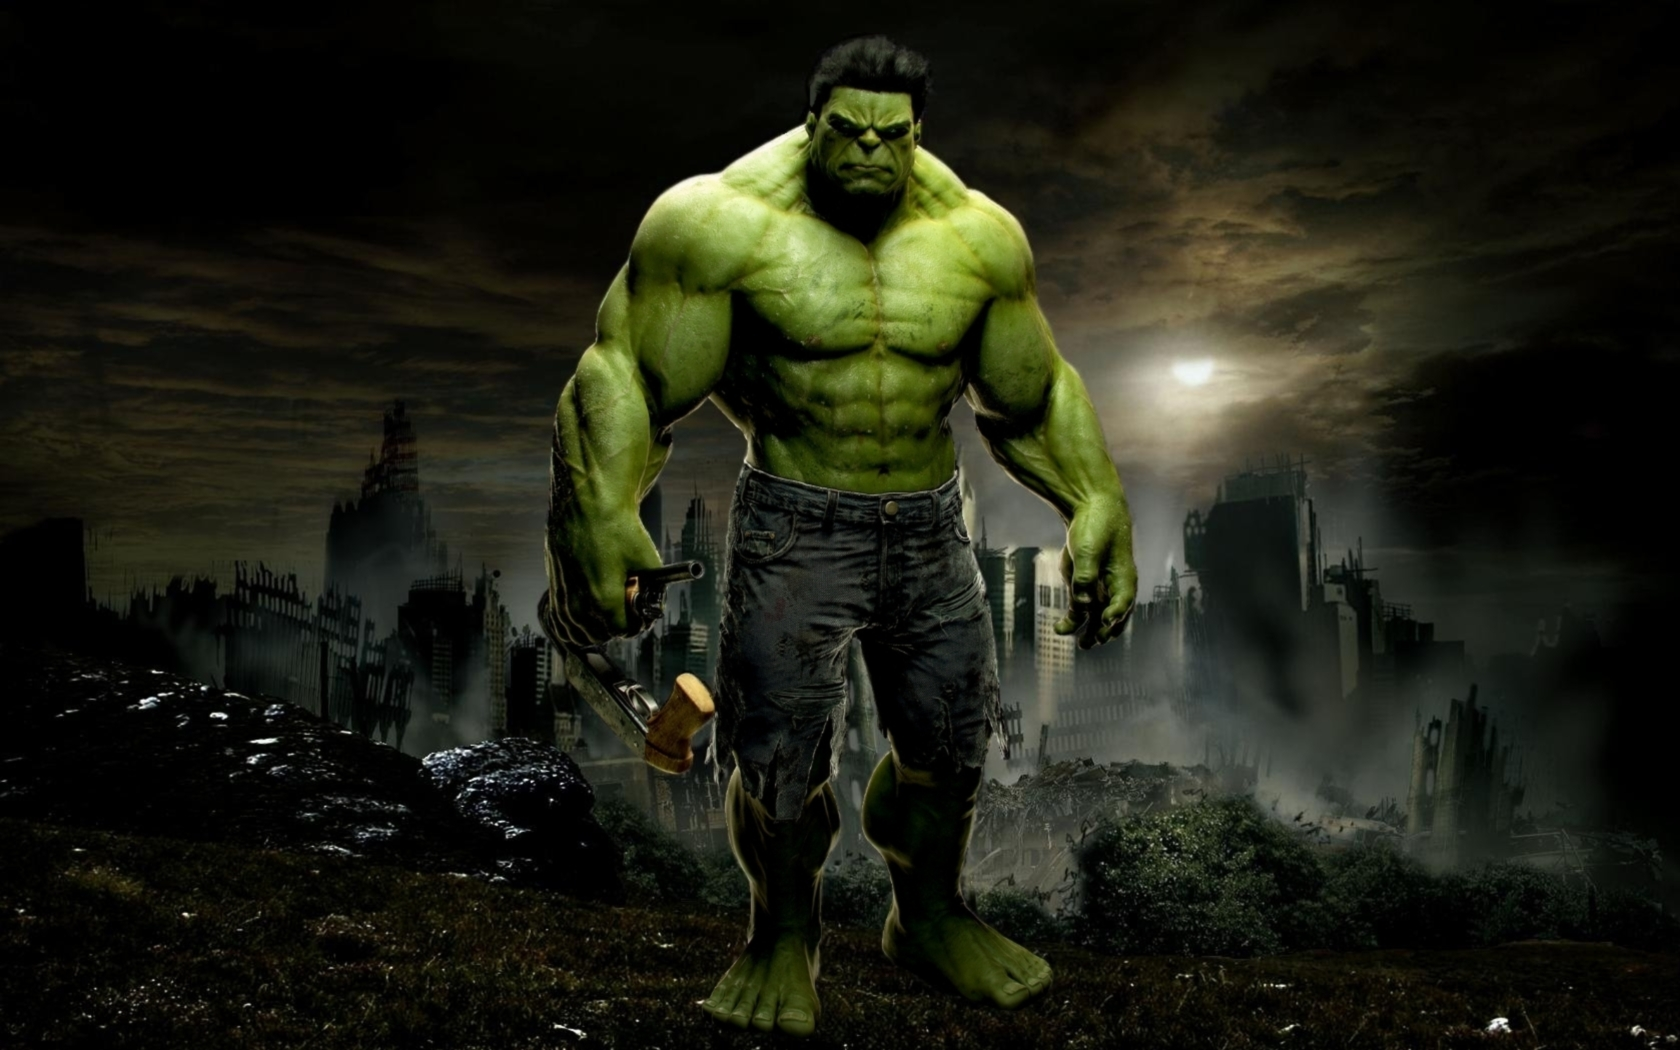 HD-Hulk-http-www-cartoonography-com-hd-hulk-html-wallpaper-wpc5805747